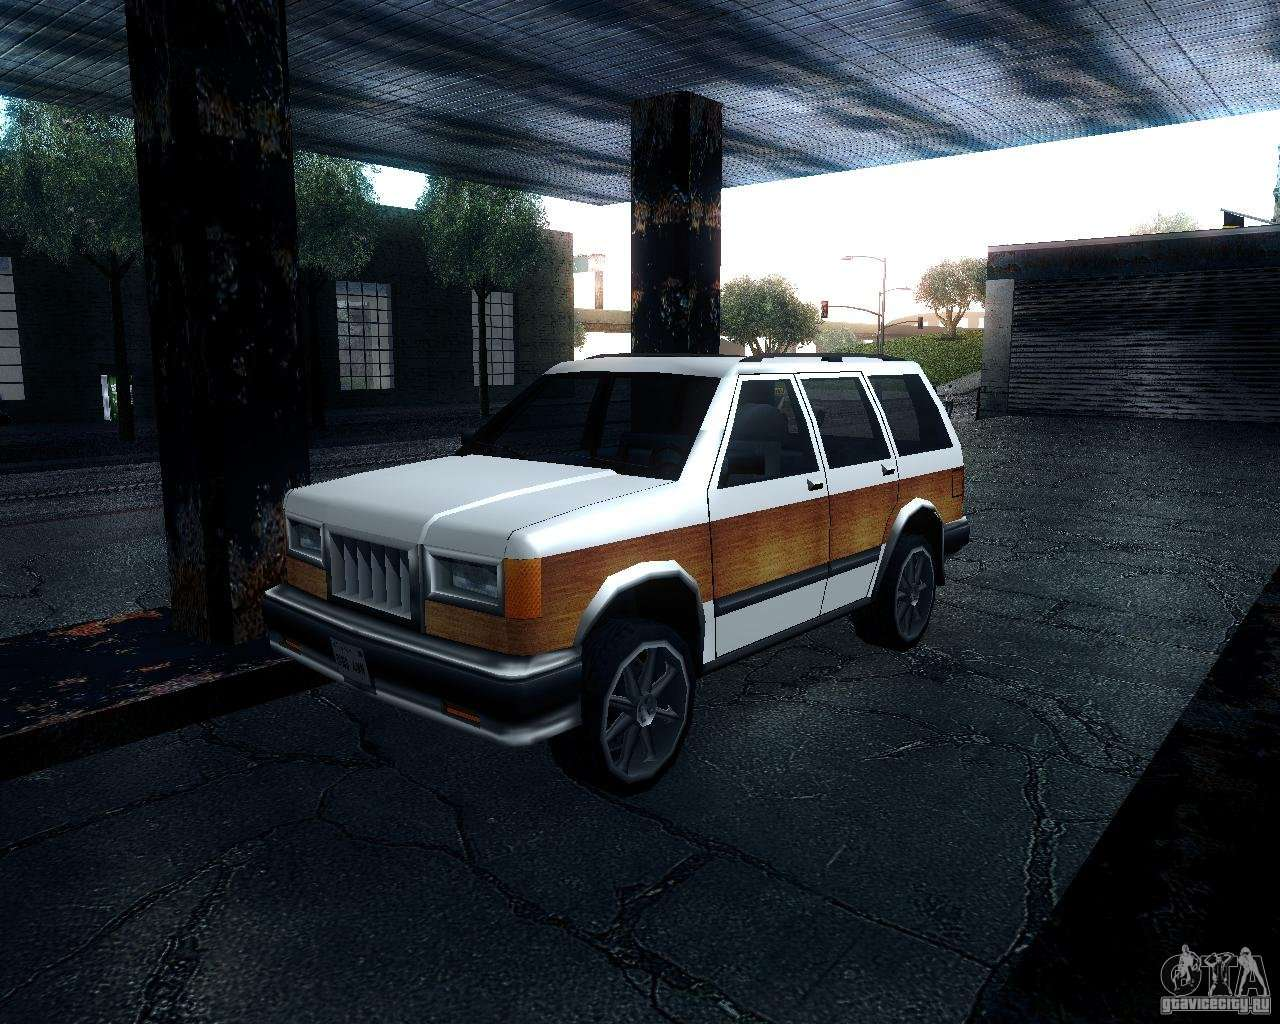 GTAall com — GTA mods with installer — page 784